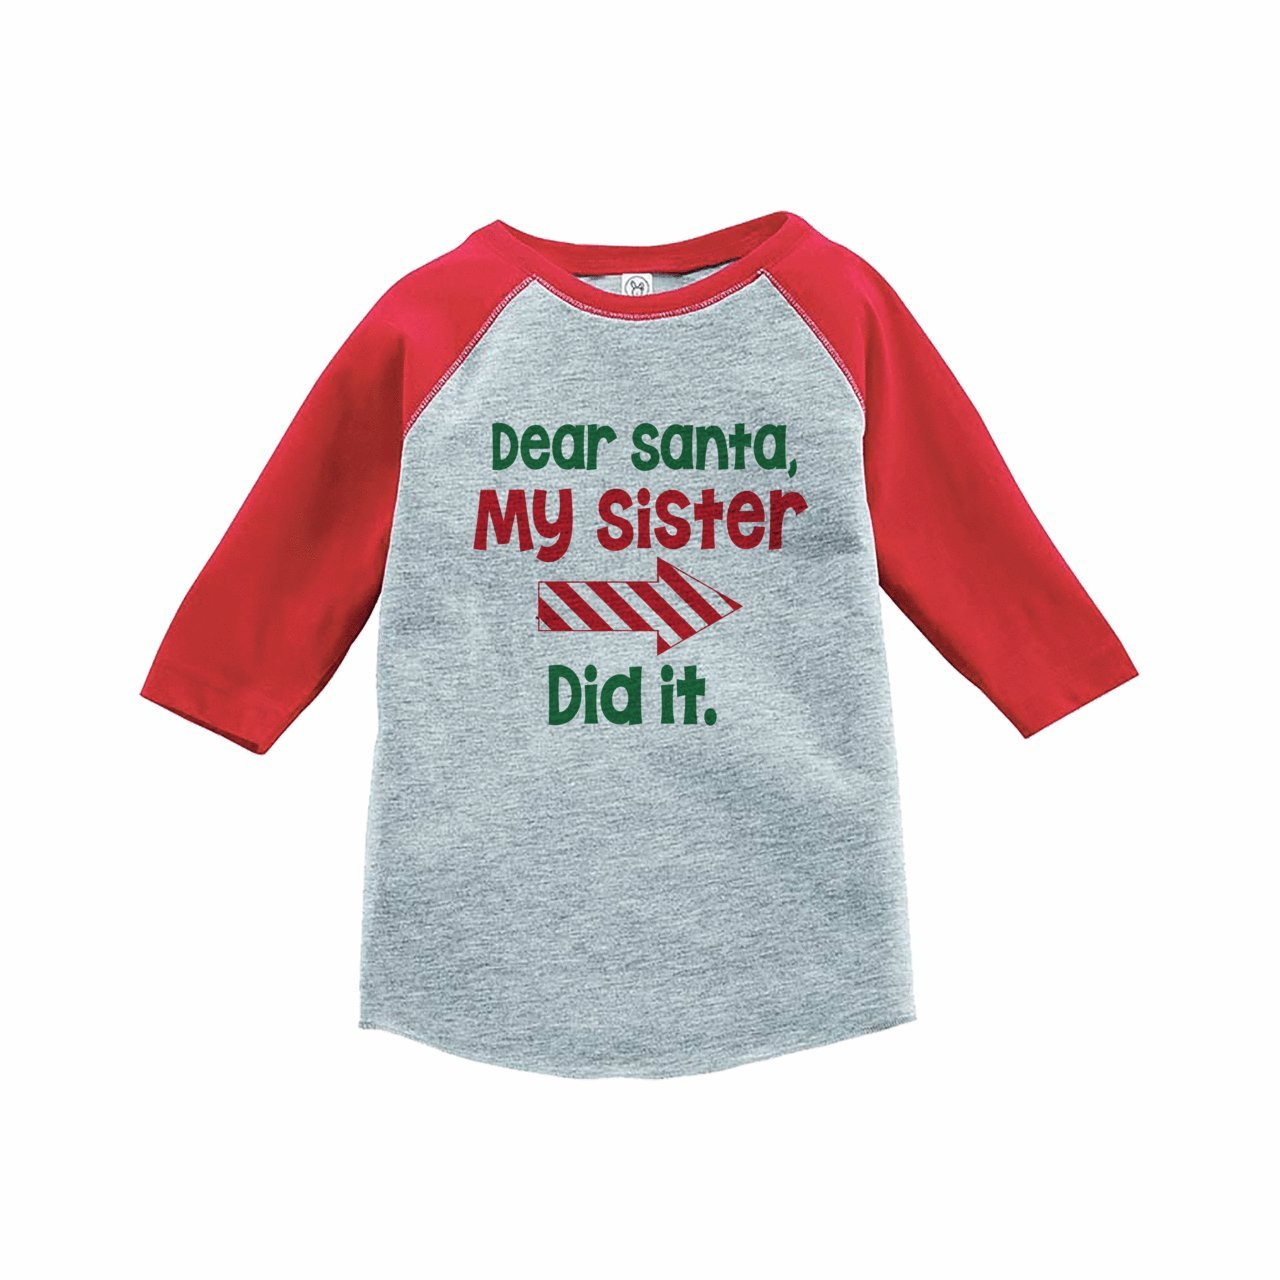 7 ate 9 Apparel Funny Kids Santa Christmas Raglan Tee Red